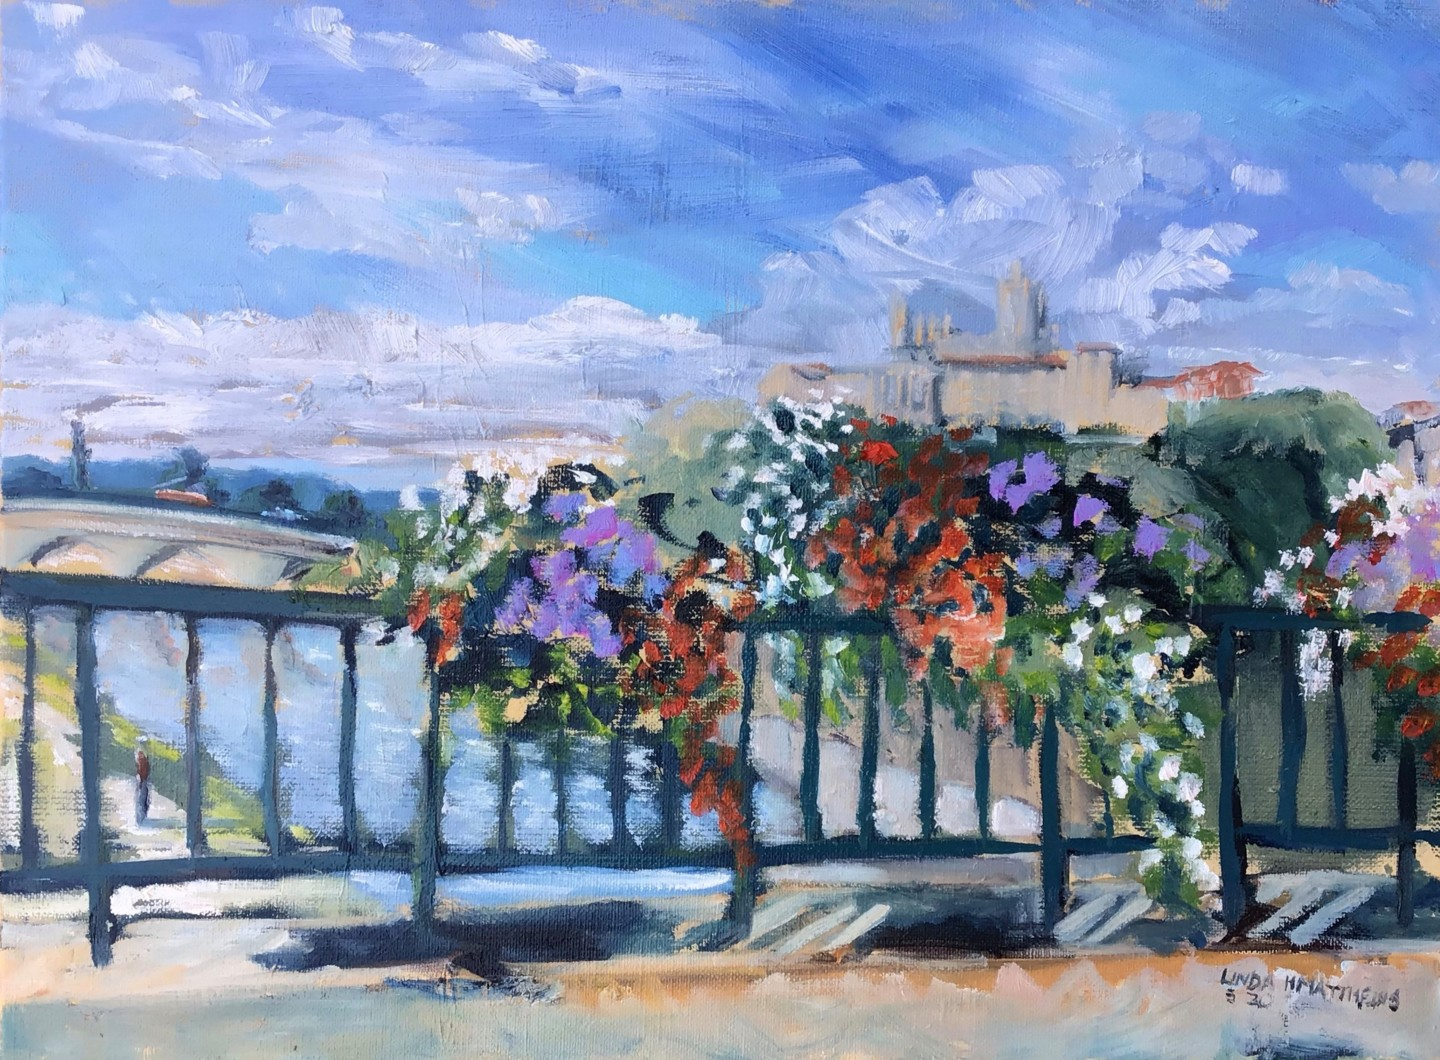 Linda H Matthews - Cathedrale St. Nazaire, Beziers